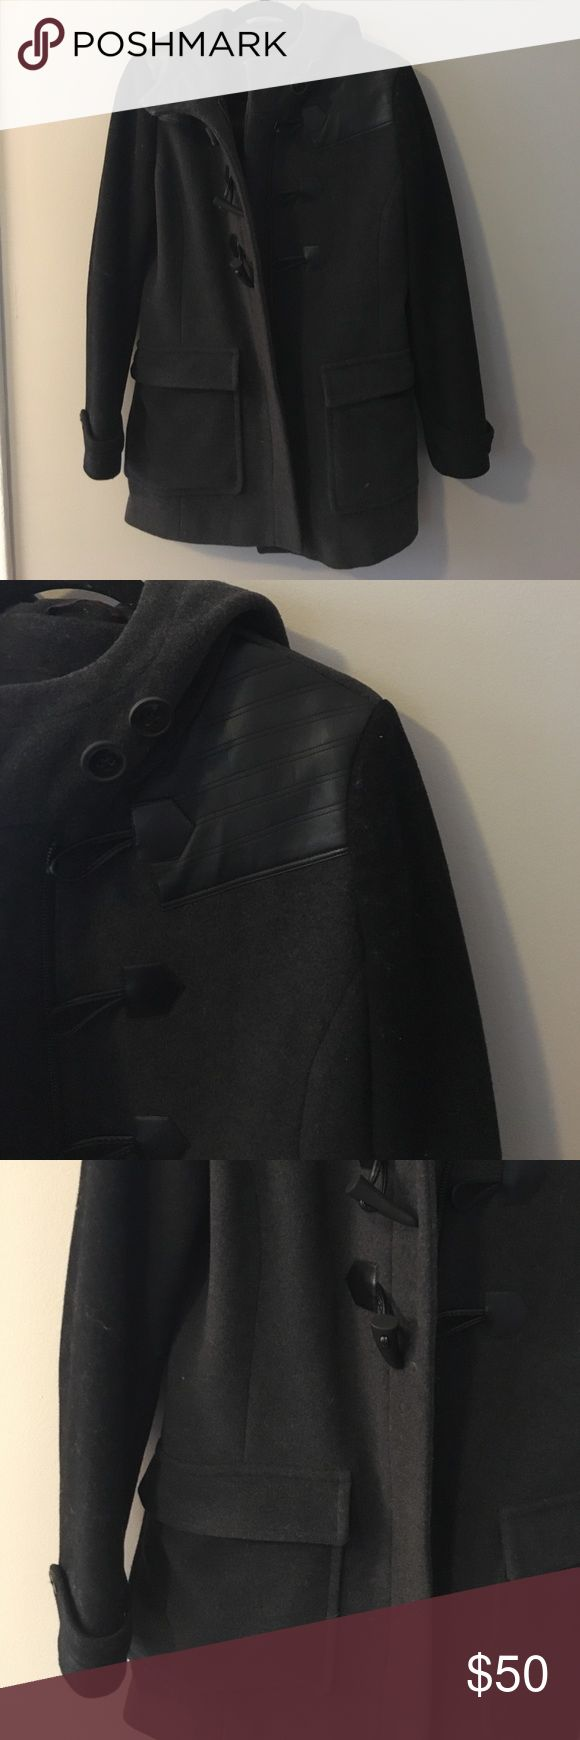 Andrew Marc Coat Selling this size 6 gray and black Andrew Marc winter coat. Worn multiple times but still in great condition! Andrew Marc Jackets & Coats Pea Coats